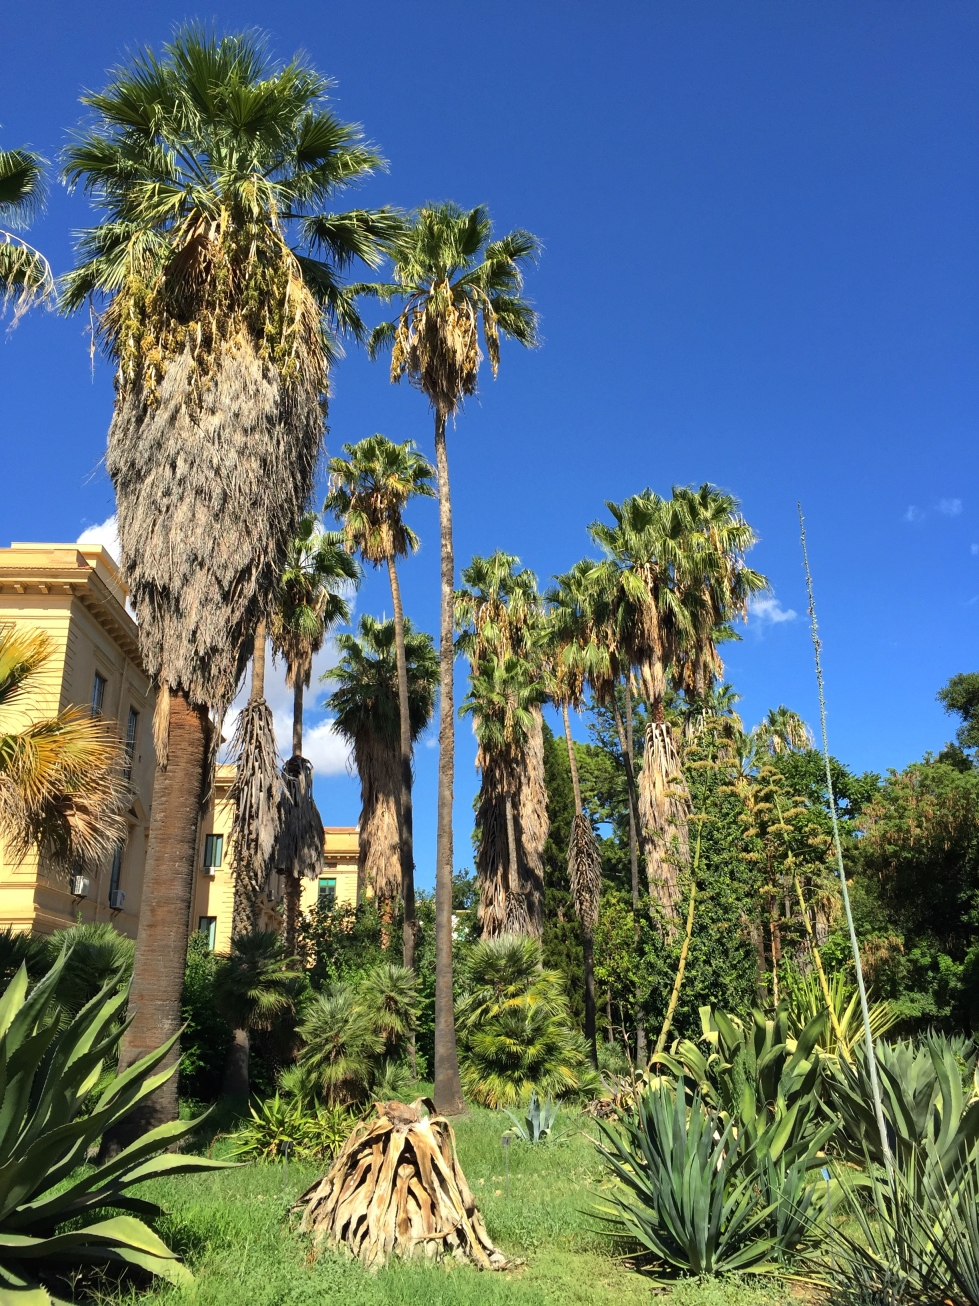 Shaggy palms add to the Jurrasic feel of the garden